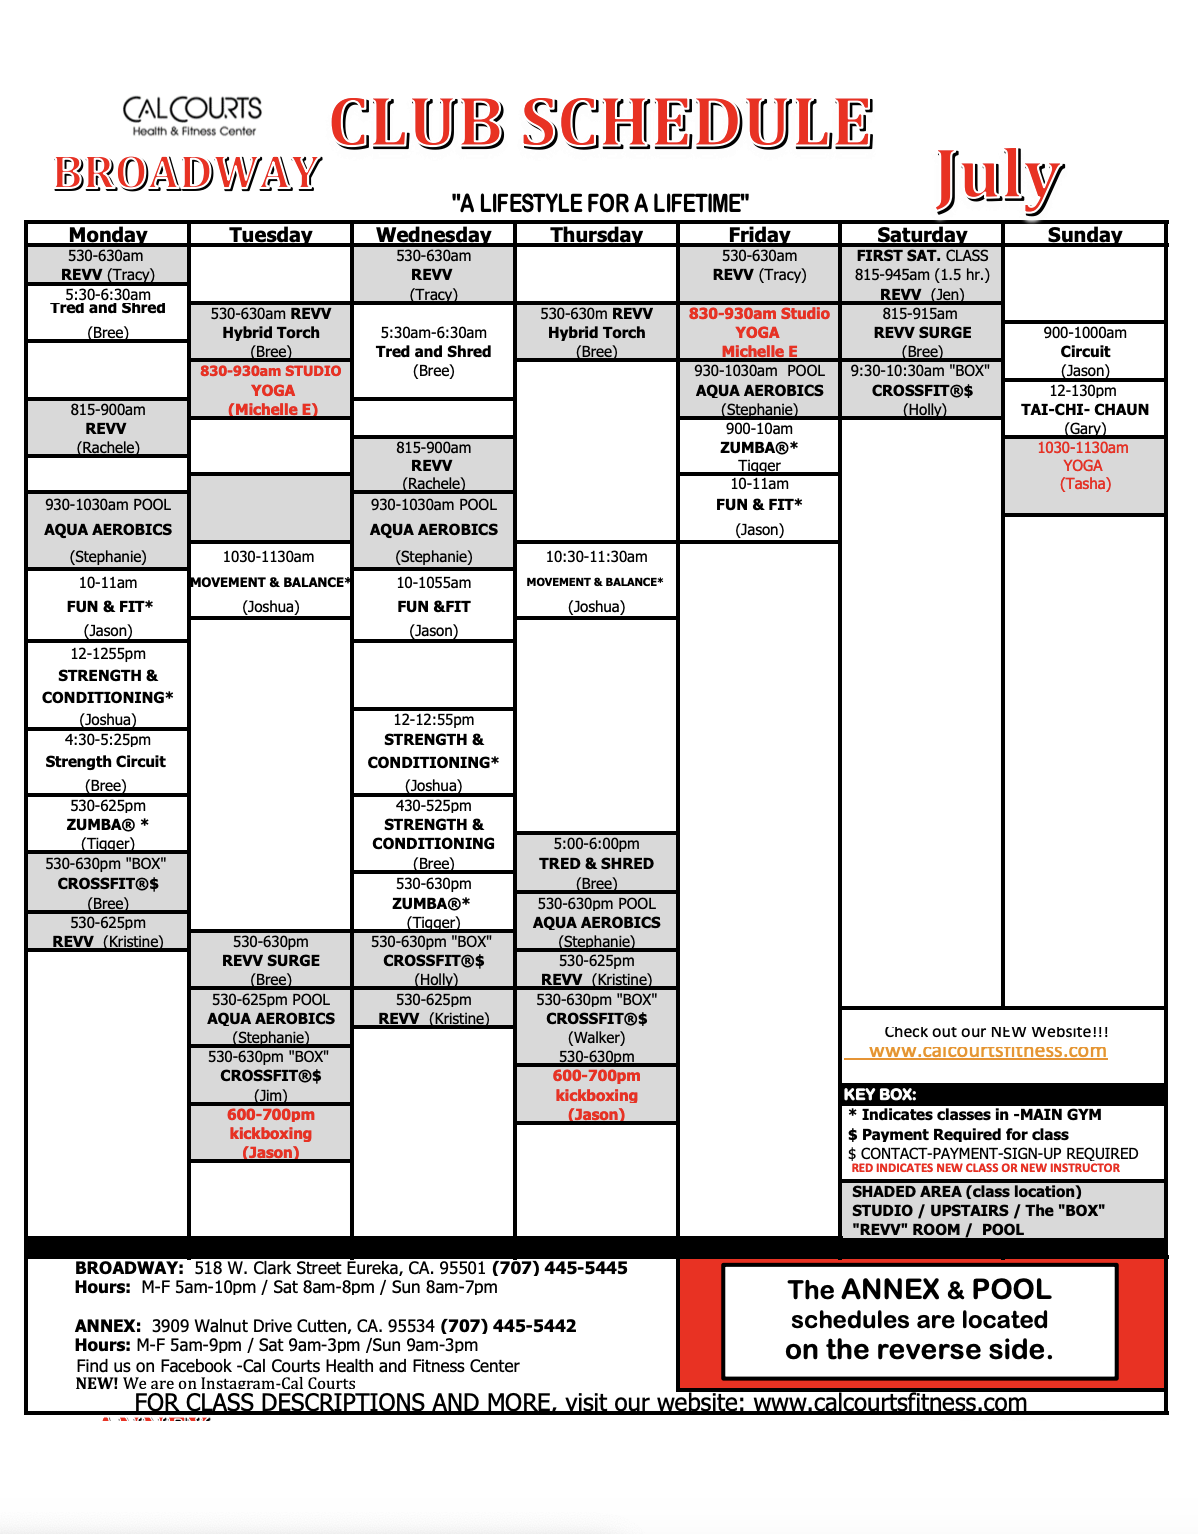 Fitness Classes - CalCourts Health & Fitness Center